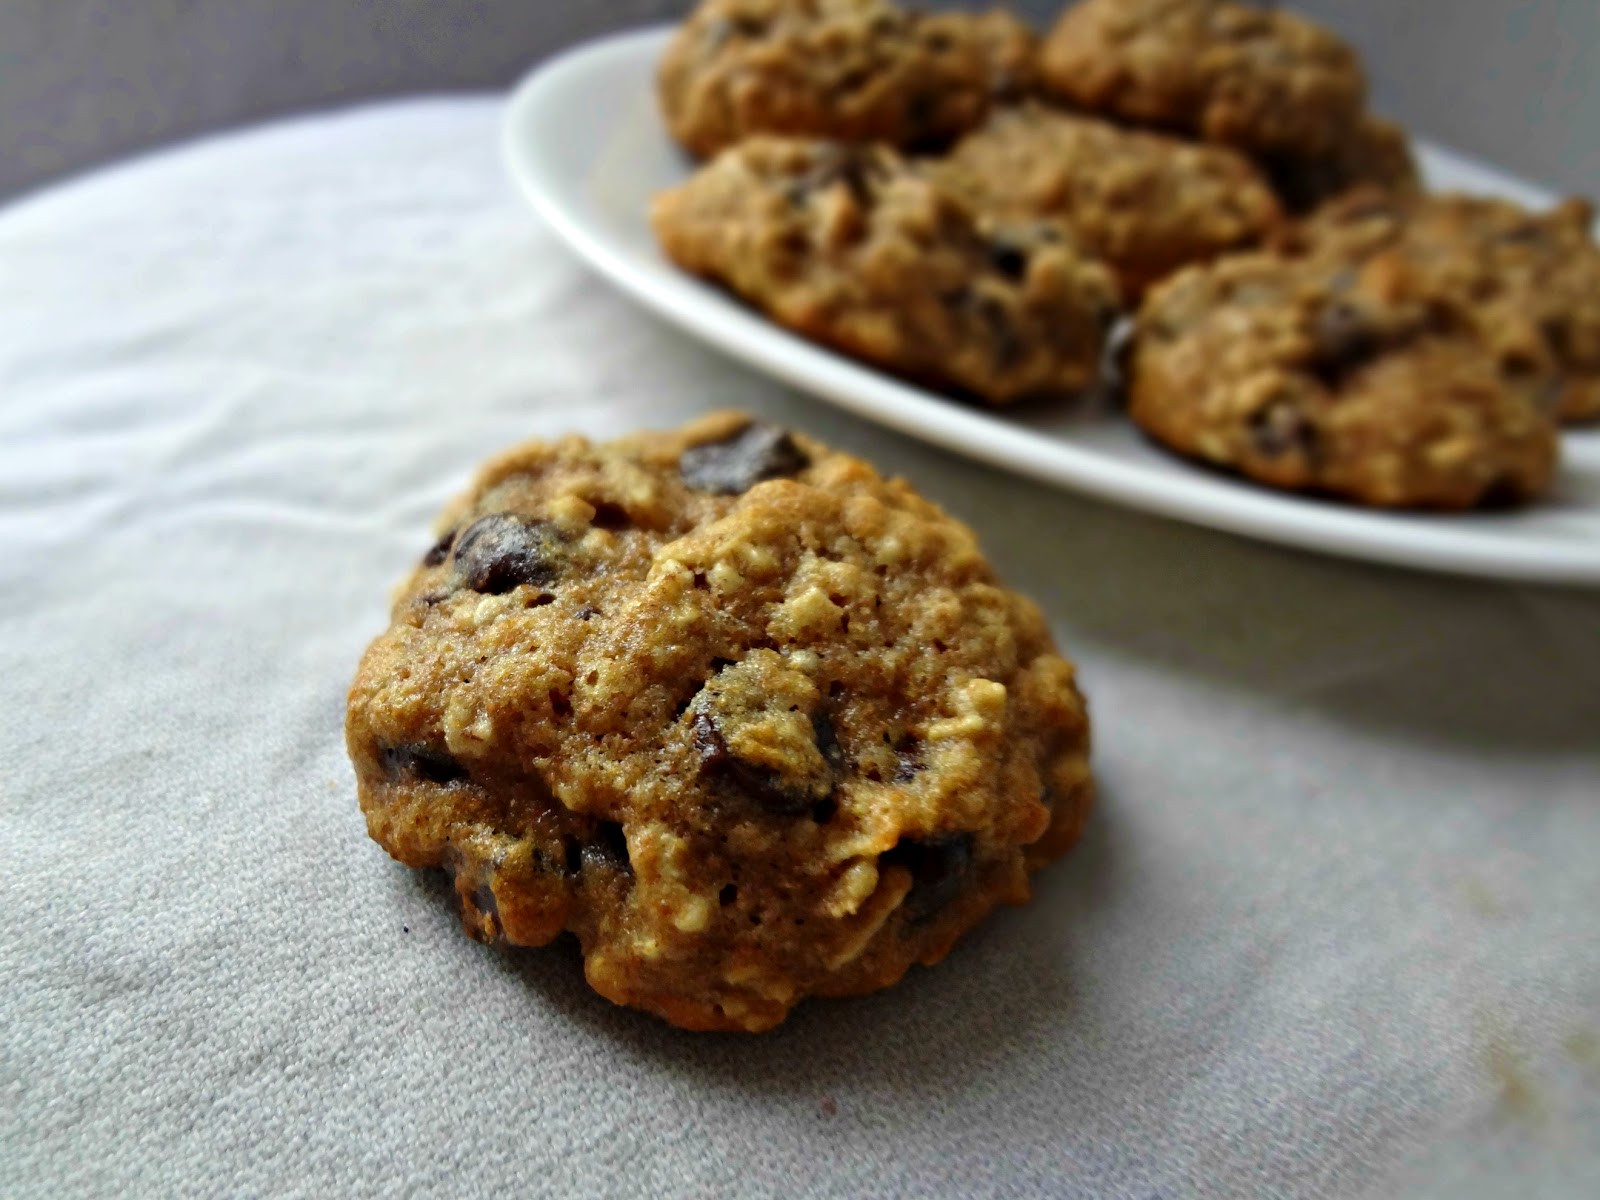 Oat Chocolate Chip Cookies Healthy  The Cooking Actress Healthy Oatmeal Chocolate Chip Cookies